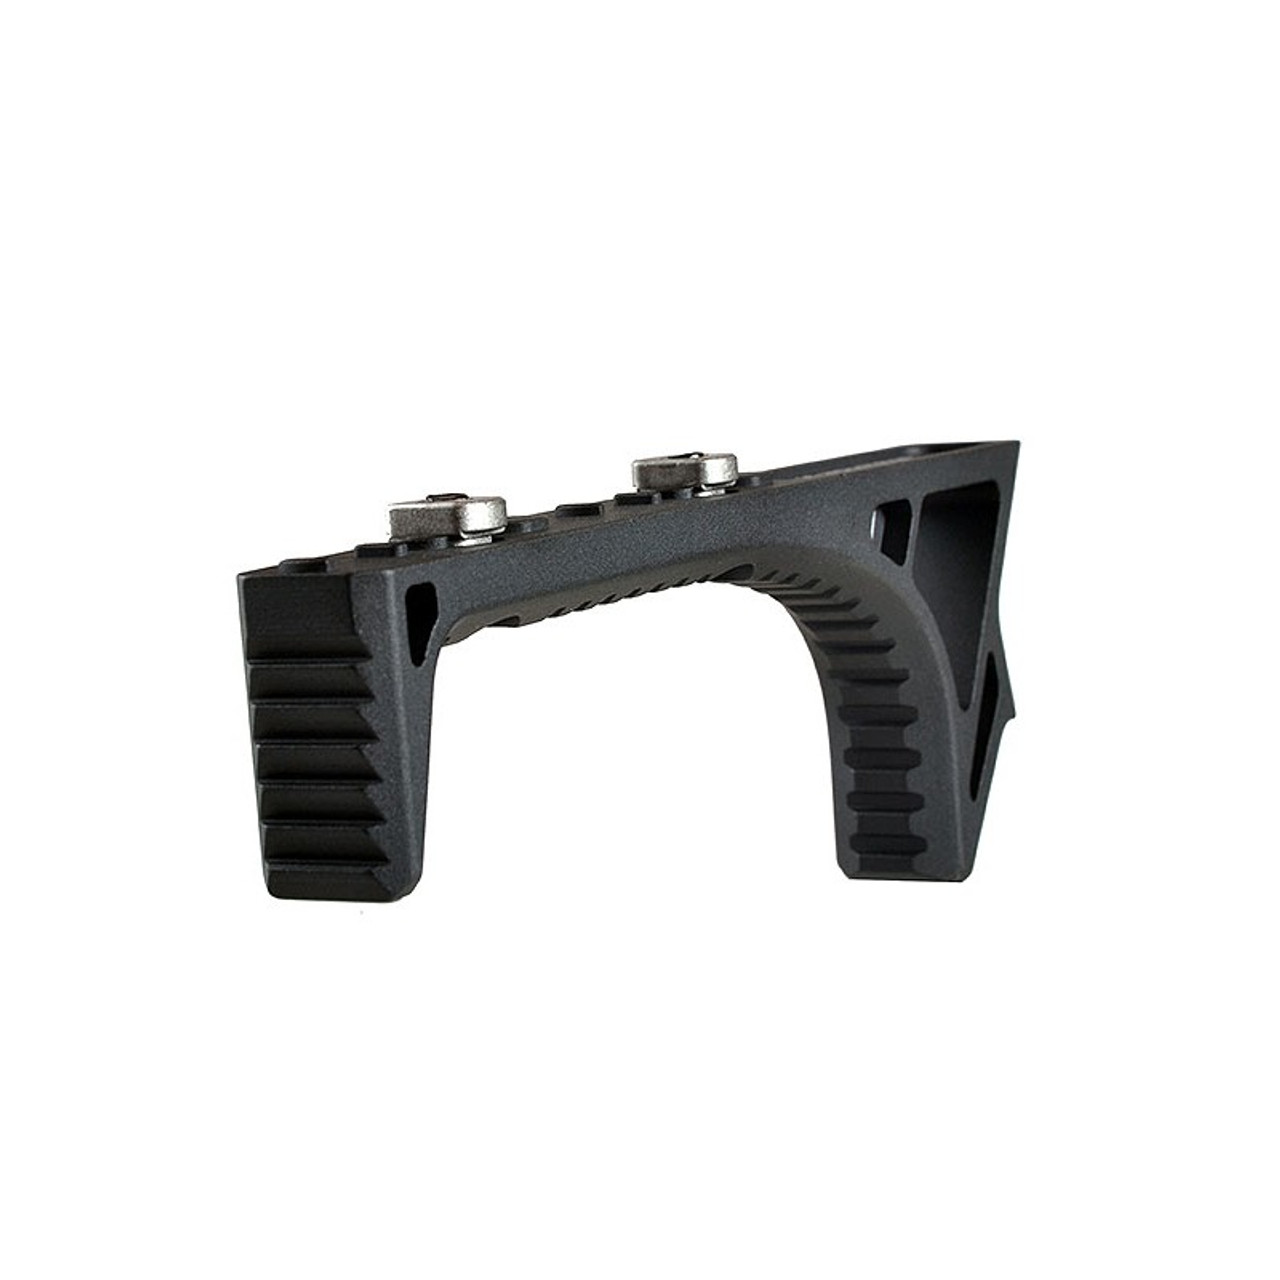 Curved Foregrip Forward Grip Keymod - Black (AS-ACFG1272)